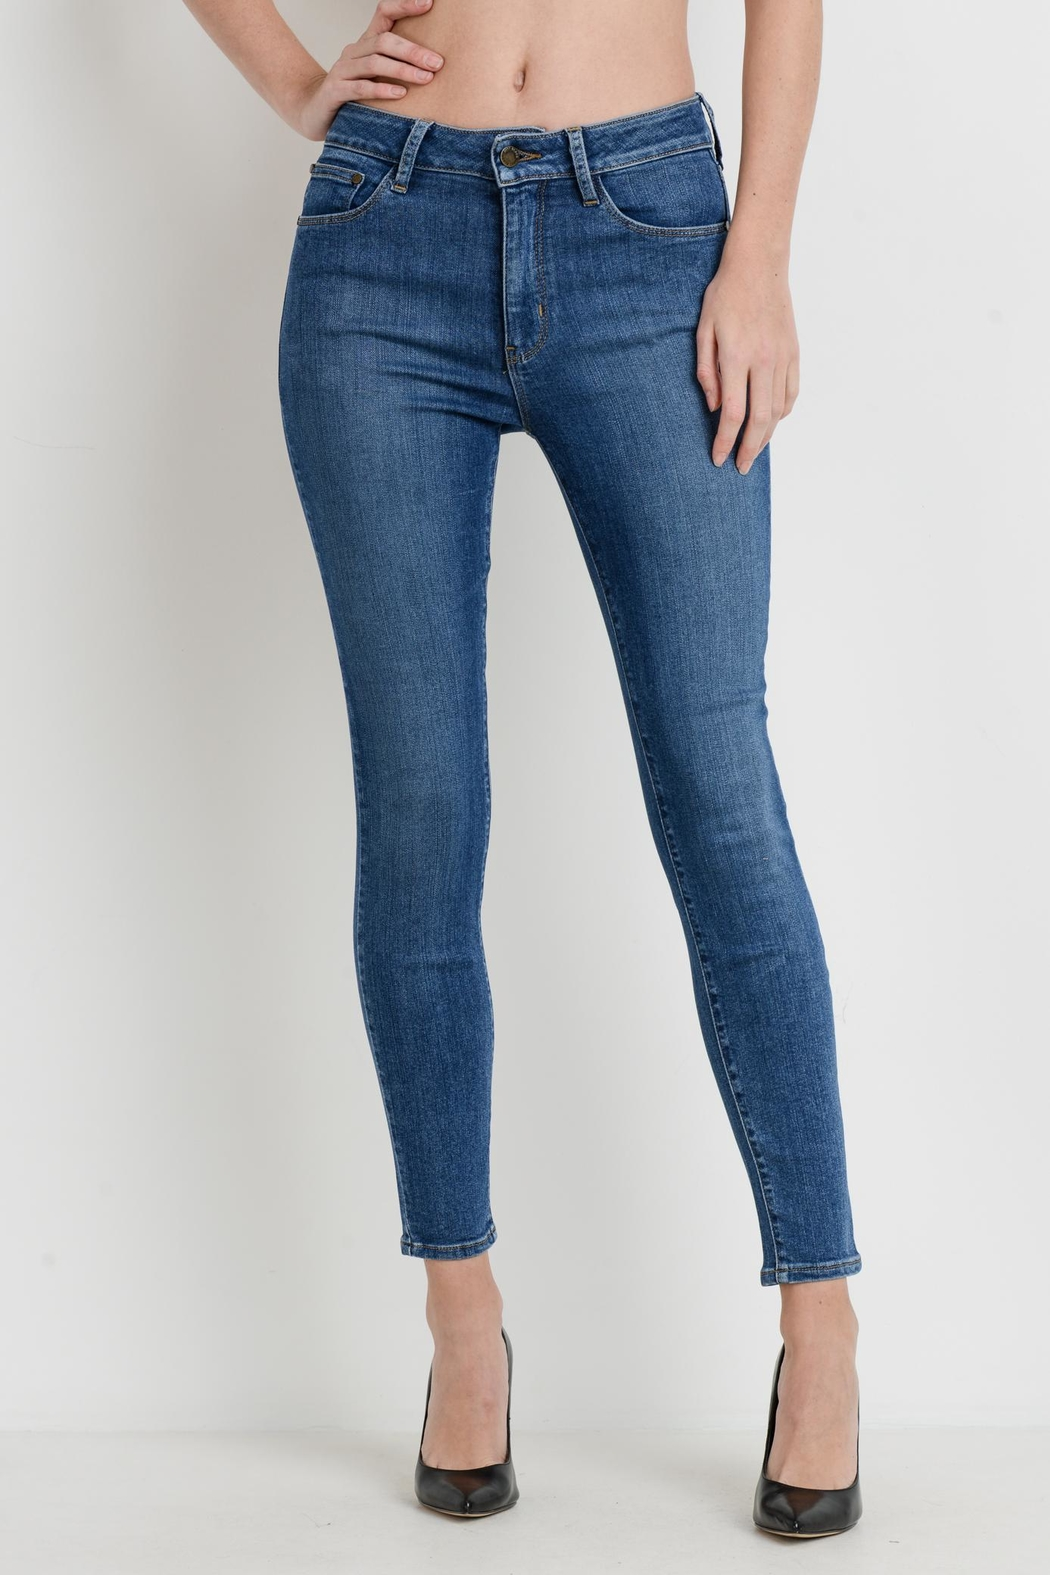 just black Stretch Skinny Jeans - Main Image